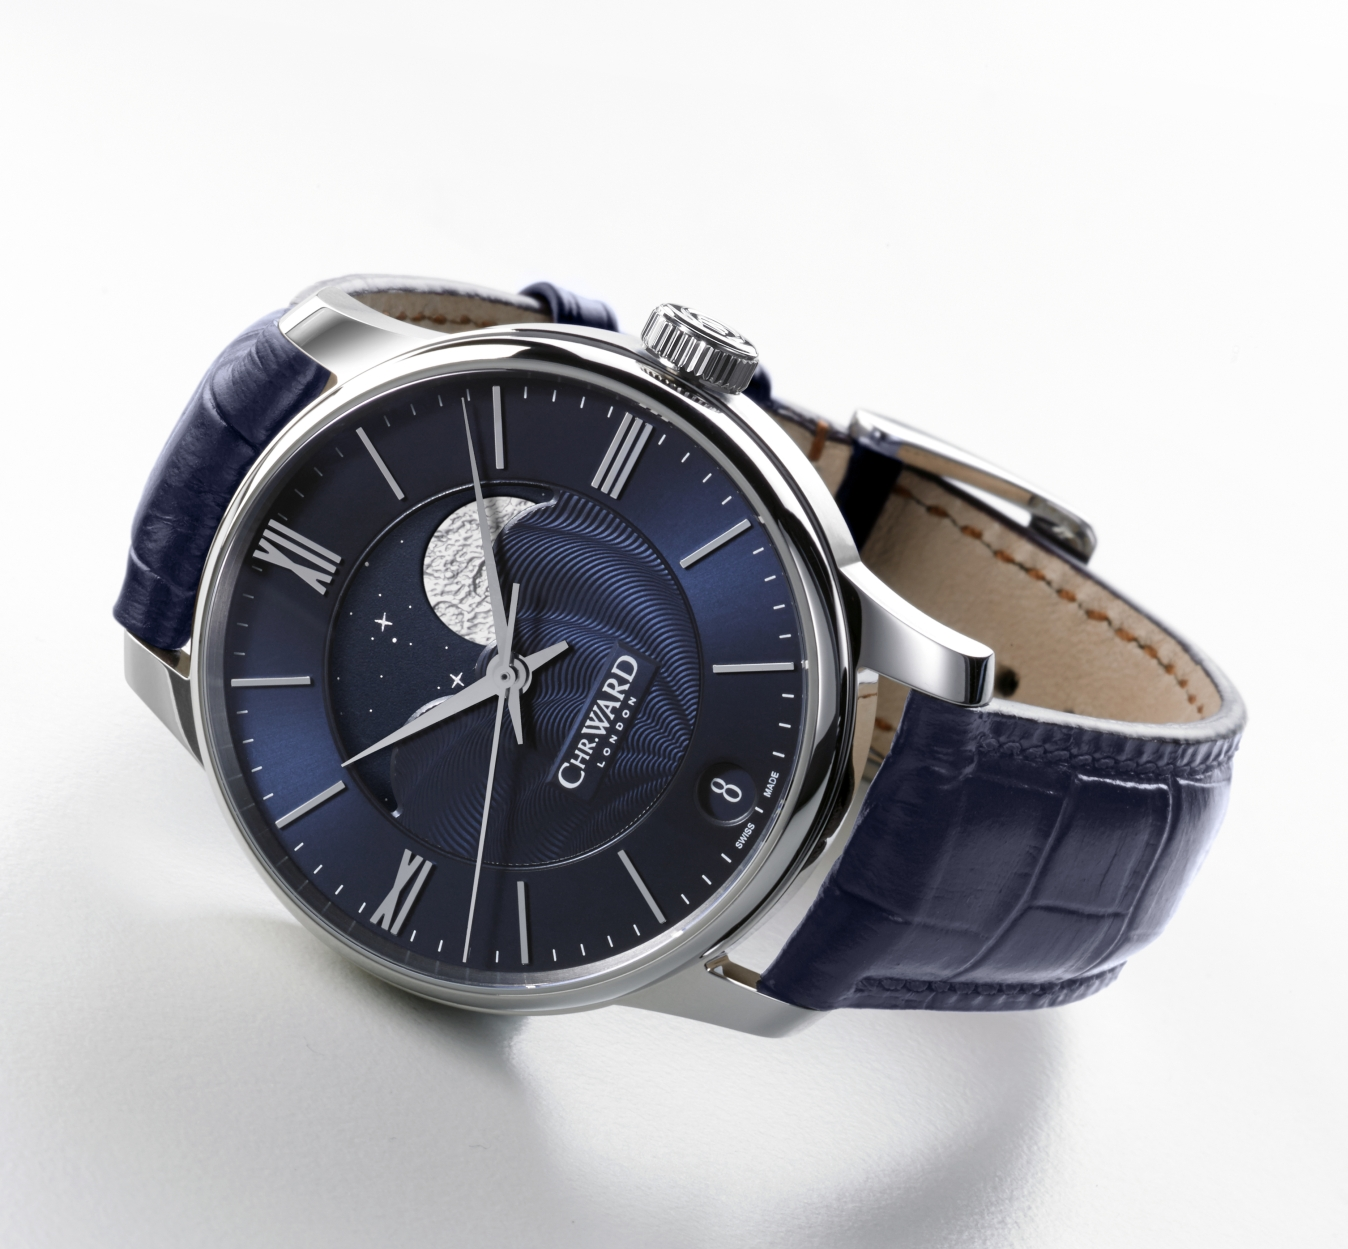 Christopher Ward's C9 Moonphase Chr-christopher-ward-c9-moonphase-wristwatch-blue-dial